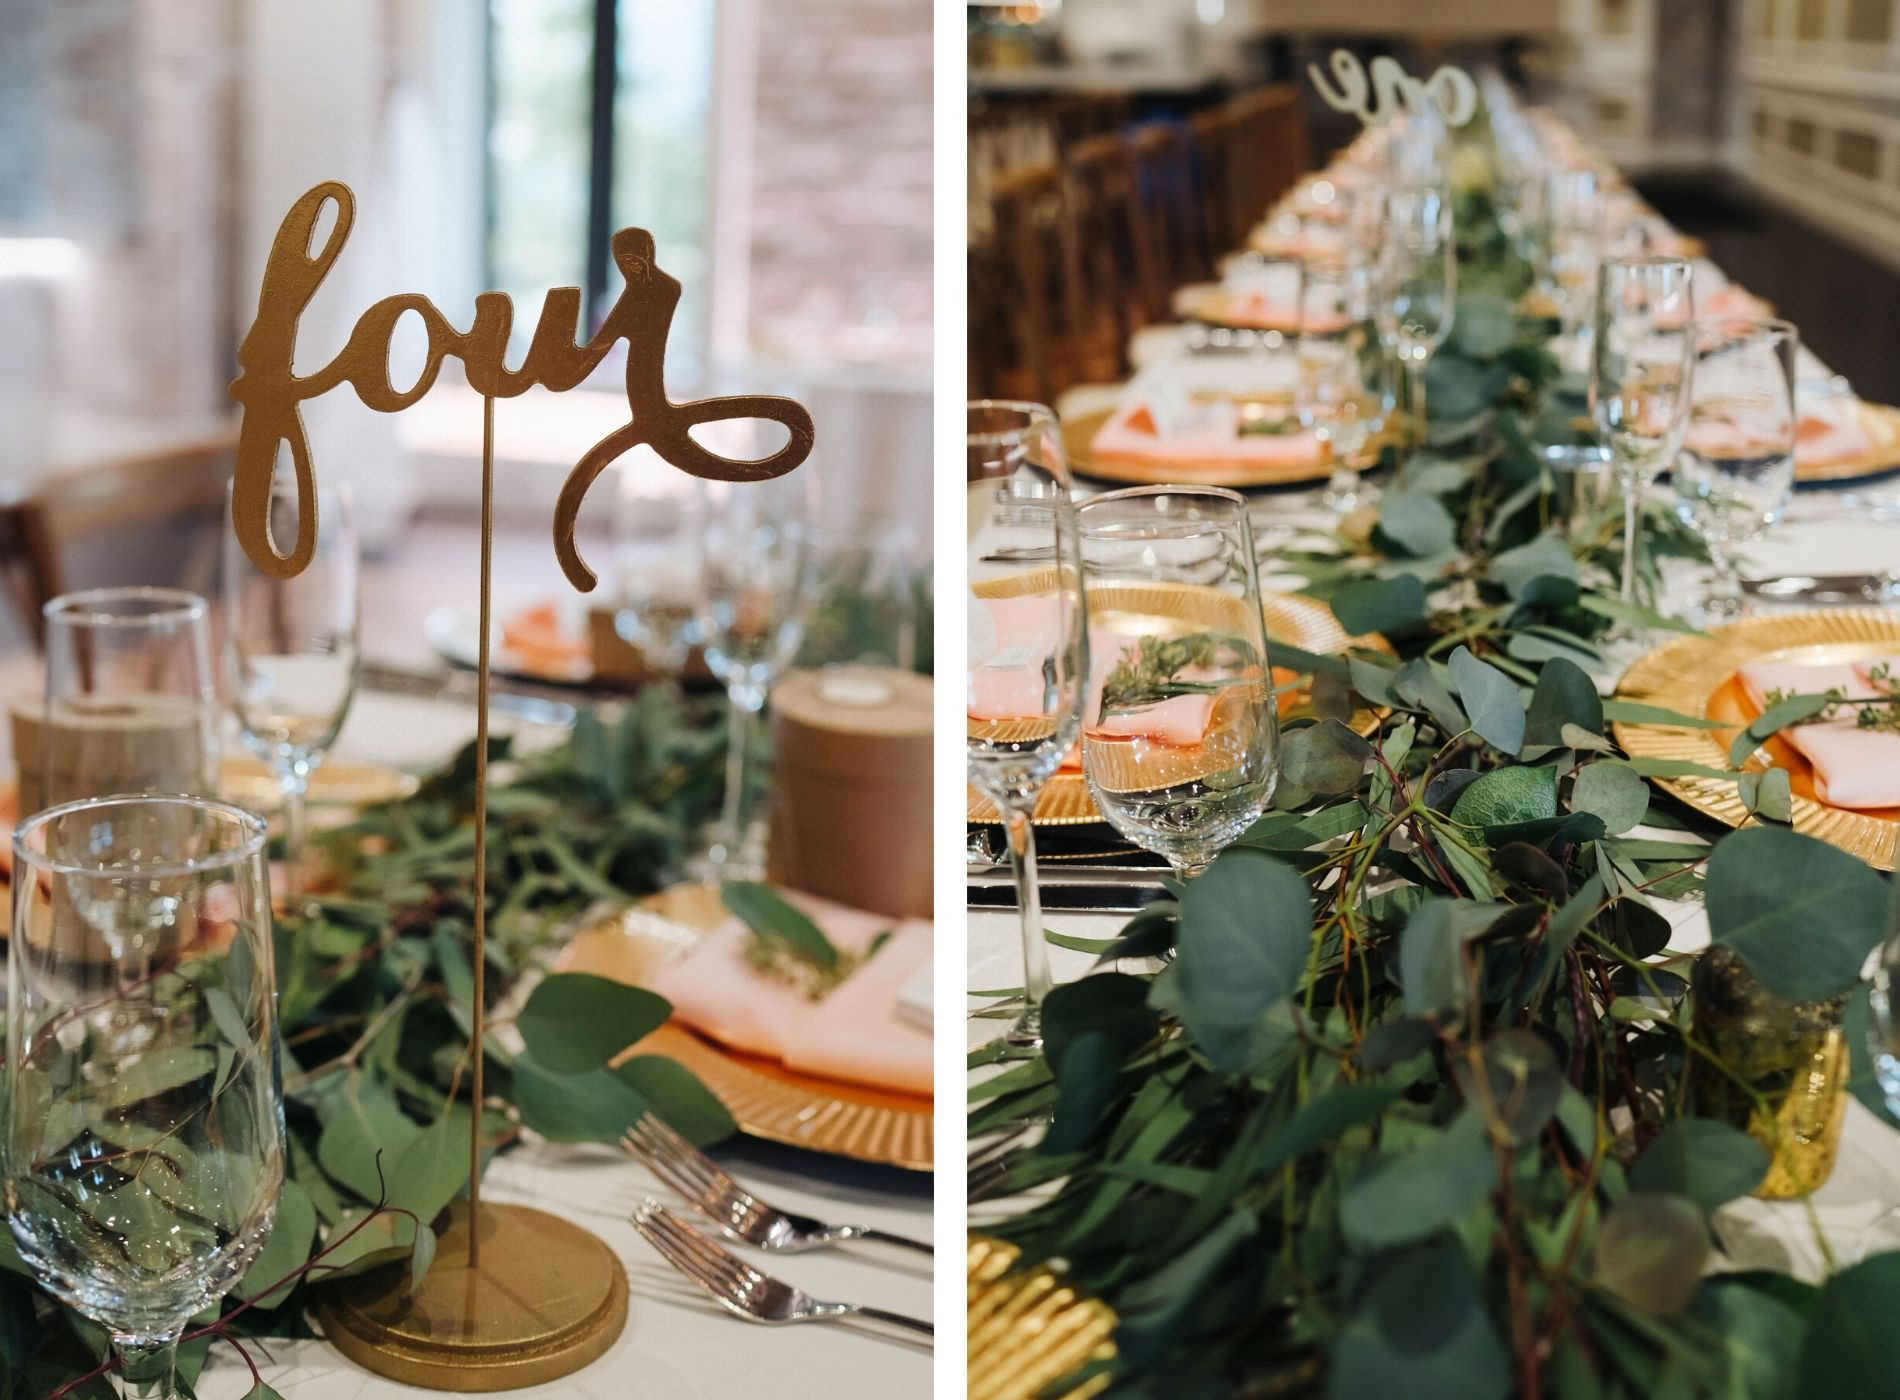 St. Petersburg Florida Wedding Venue   Red Mesa Events   Reception Long Banquet Feasting Tables   Wood Cross Back French Country Chairs   Greenery Garland Centerpiece with Gold Chargers and Blush Napkins   Gold Calligraphy Table Numbers